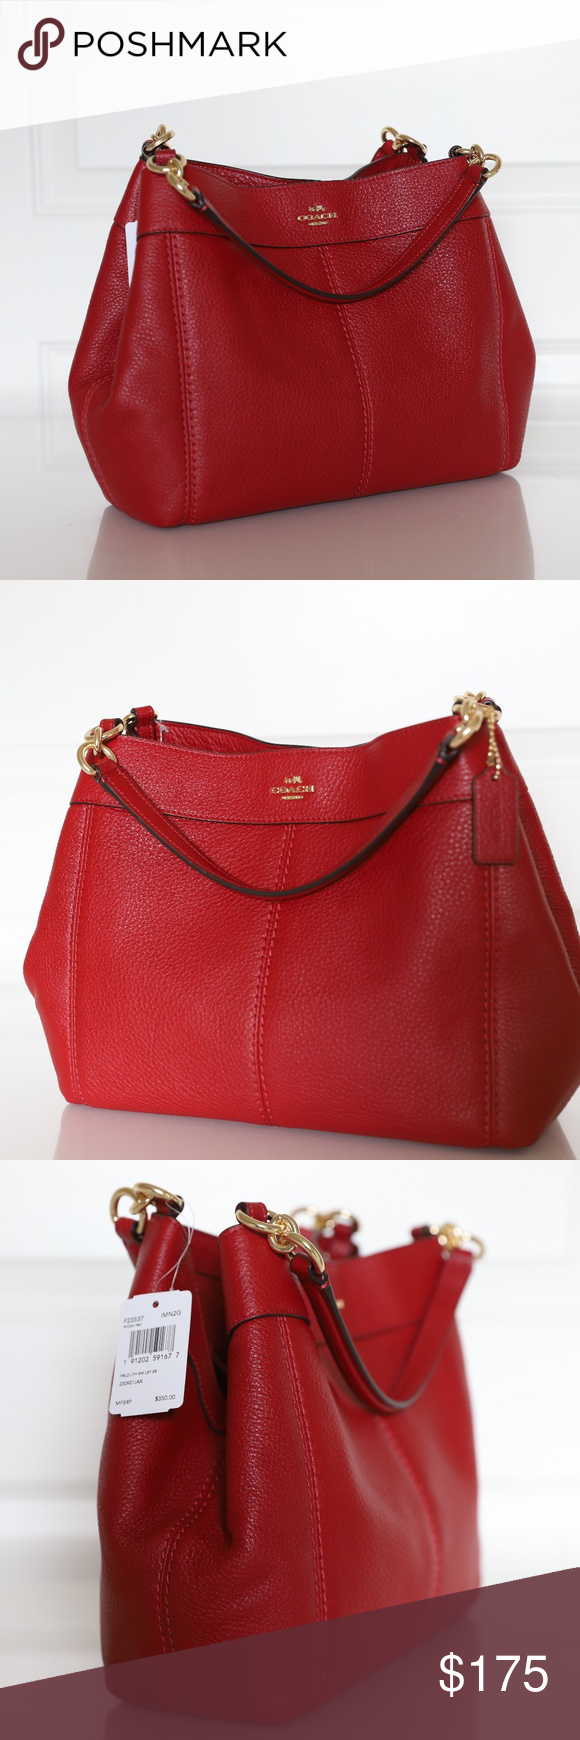 Coach F23537 Small Lexy Shoulder Bag New Coach F23537 Small Lexy Shoulder  Bag In Pebble Leather. Visit 019ba6924dc69